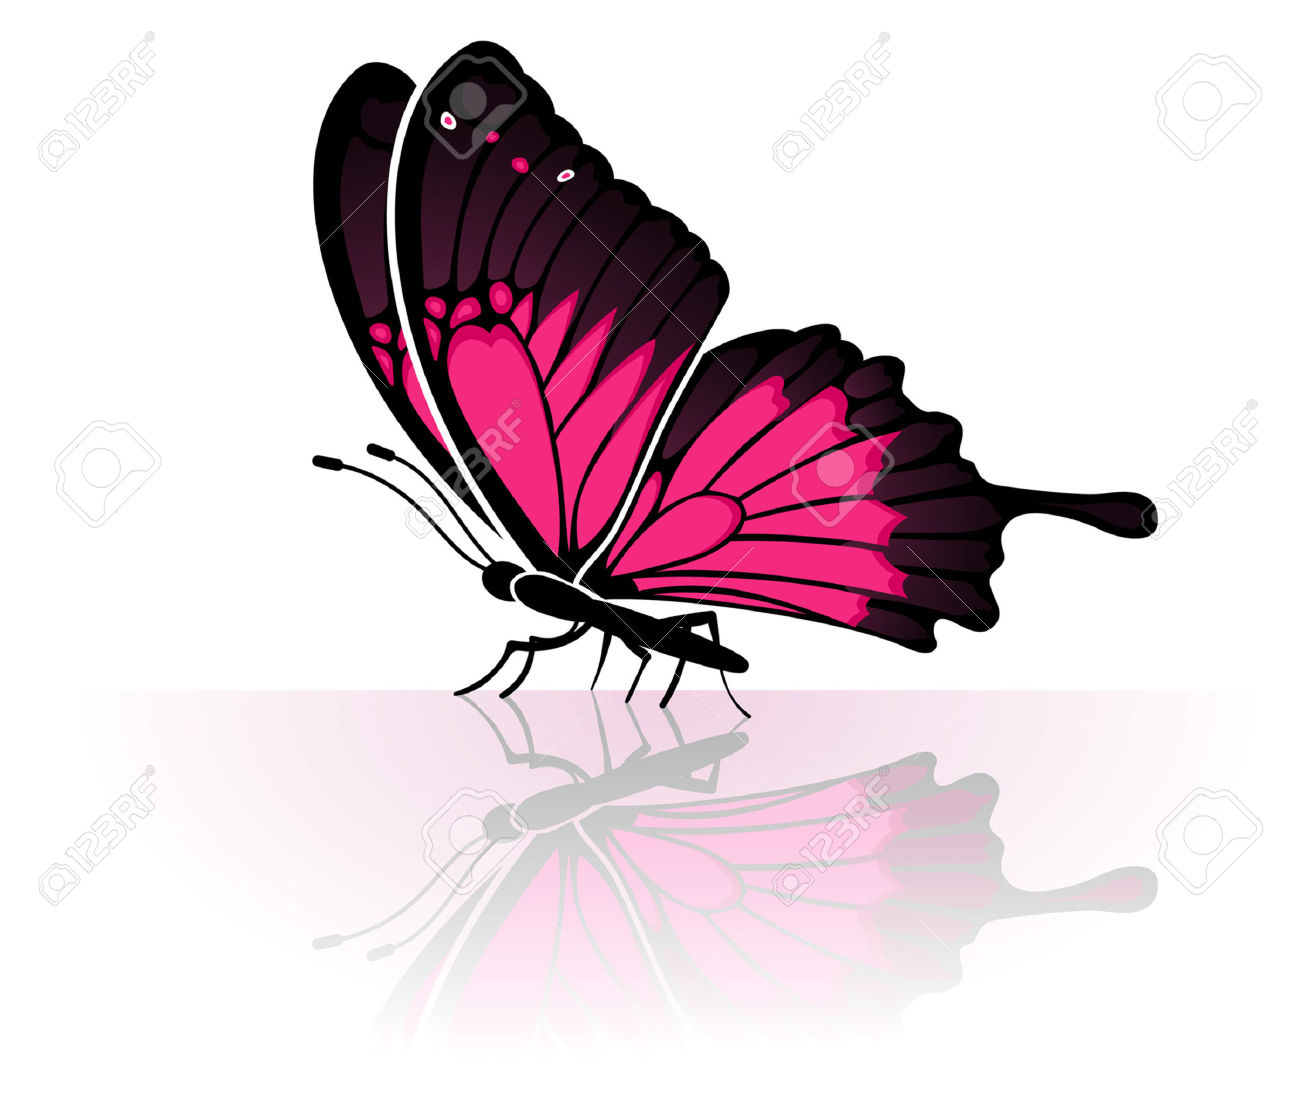 Butterfly With A Mirror Reflection, Element For Design, Vector.